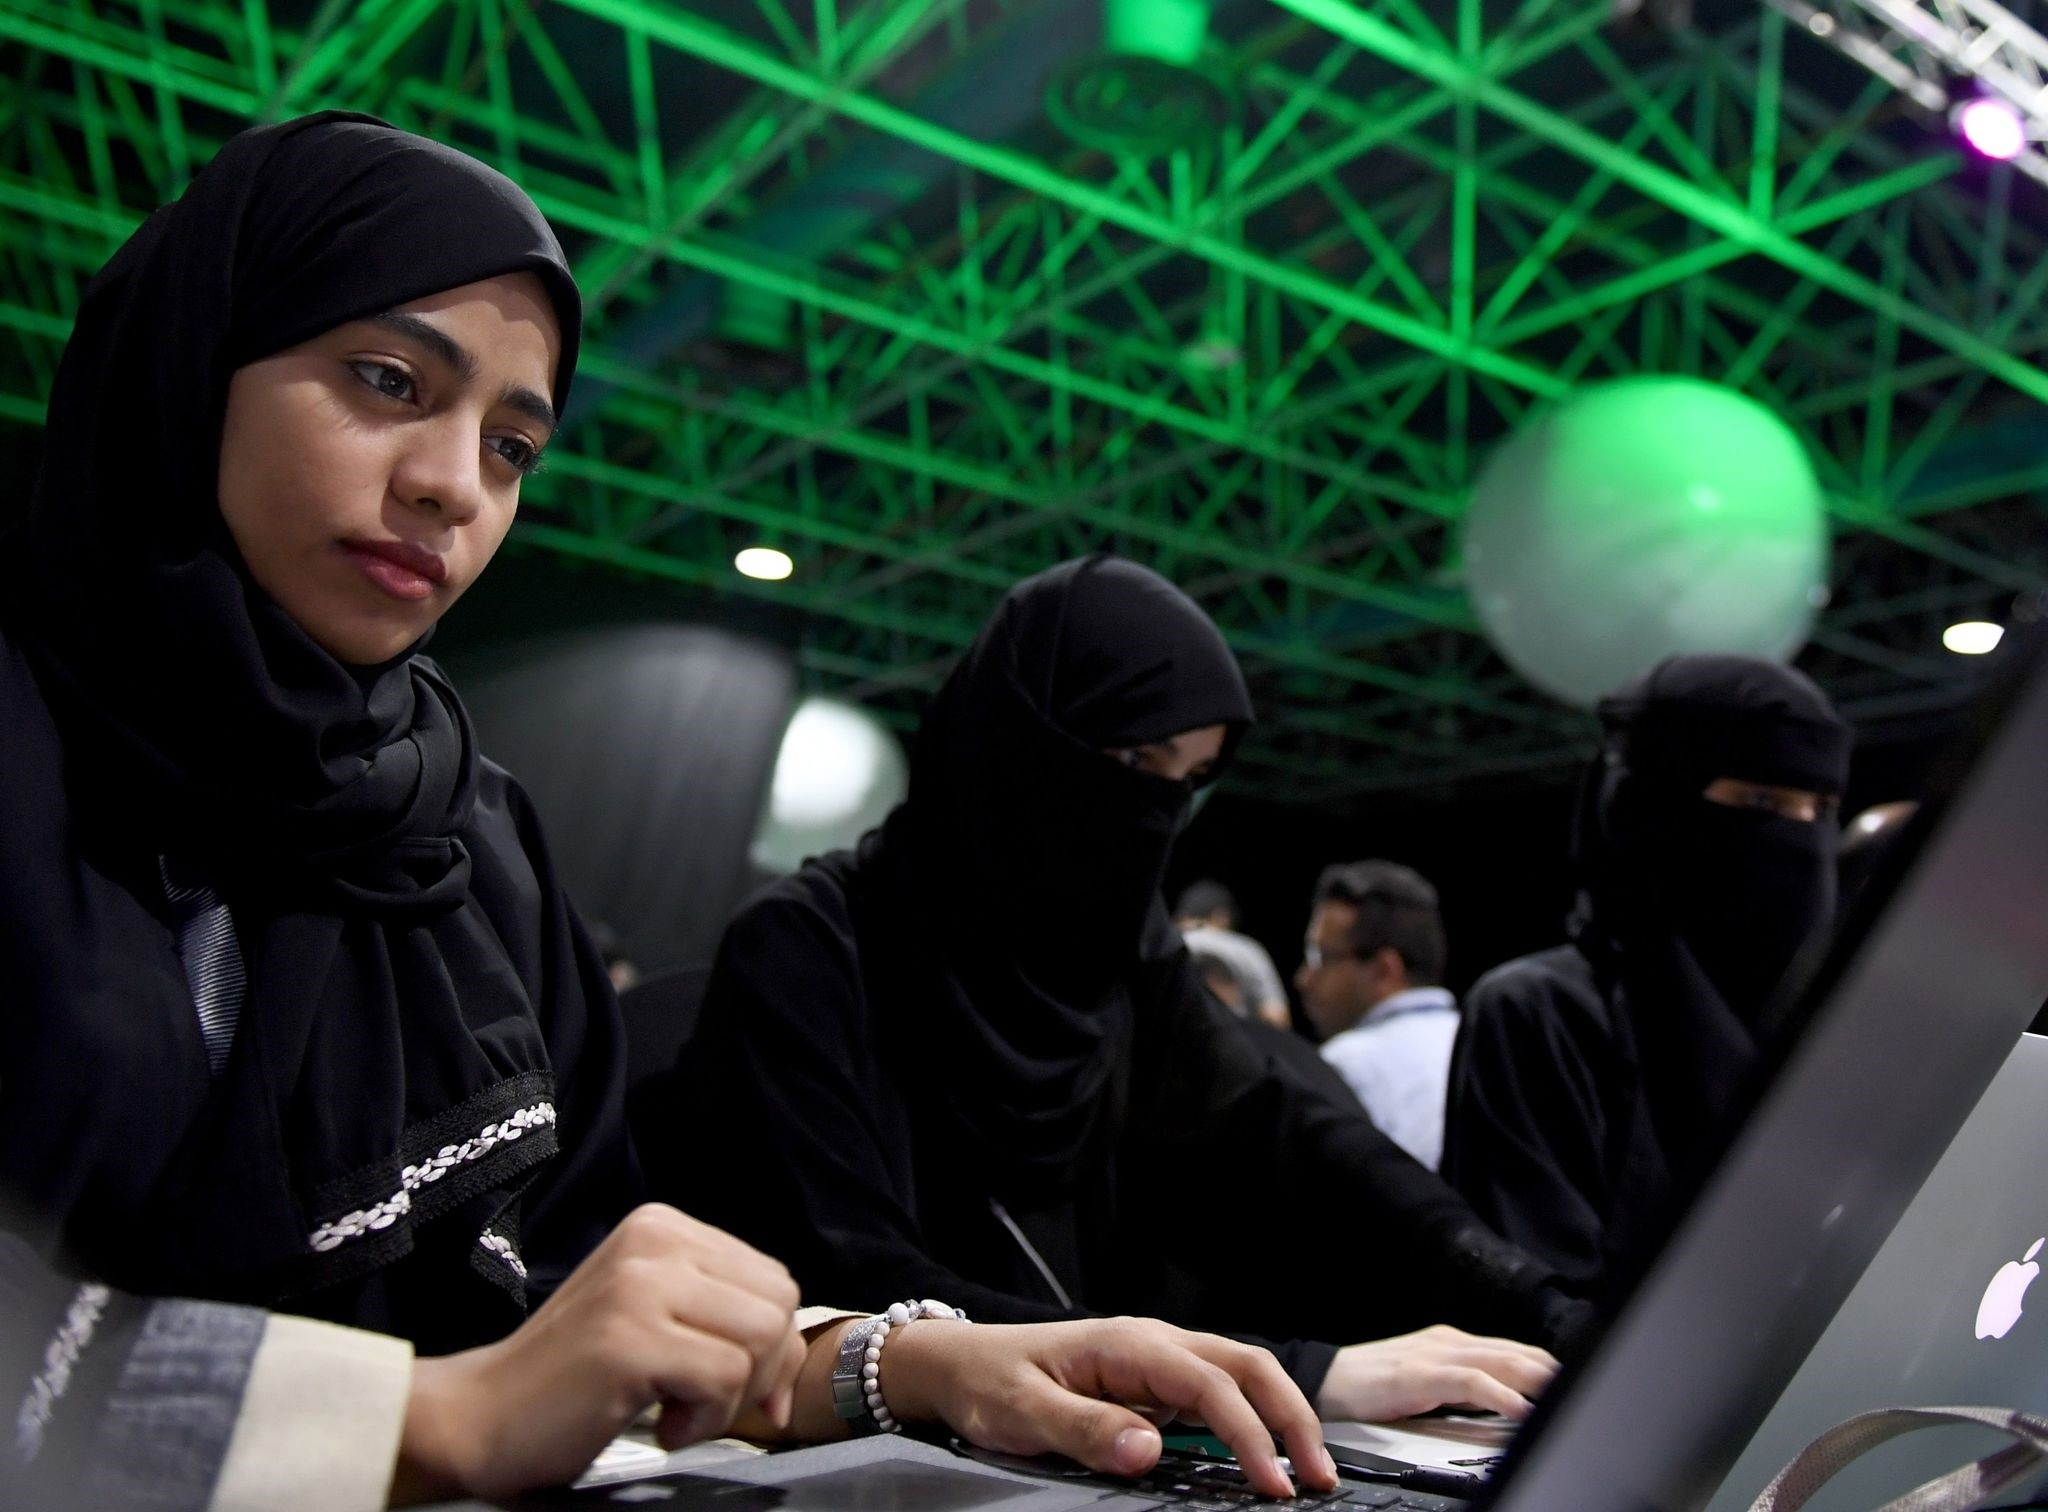 Participants, including Saudi women, attend a hackathon in Jeddah on Aug. 1, prior to the start of the annual Hajj pilgrimage in the holy city of Mecca. Around 3,000 participants attended the three-day u201cHackathon eventu201d in Jeddah, the government said